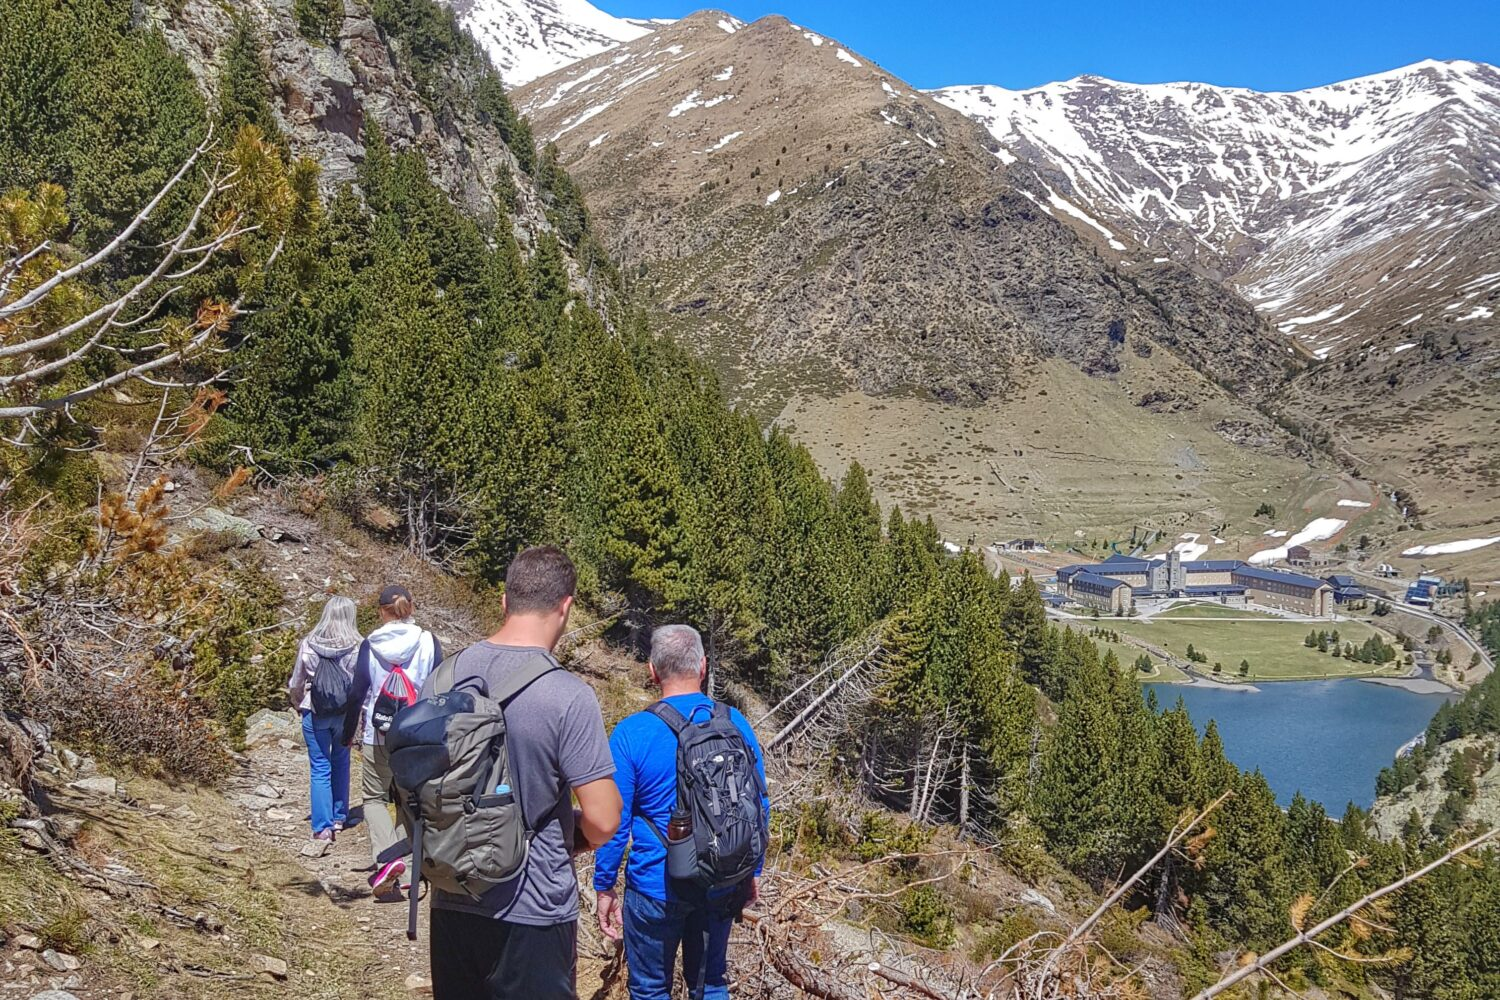 Hiking experience in the Nuria Valley